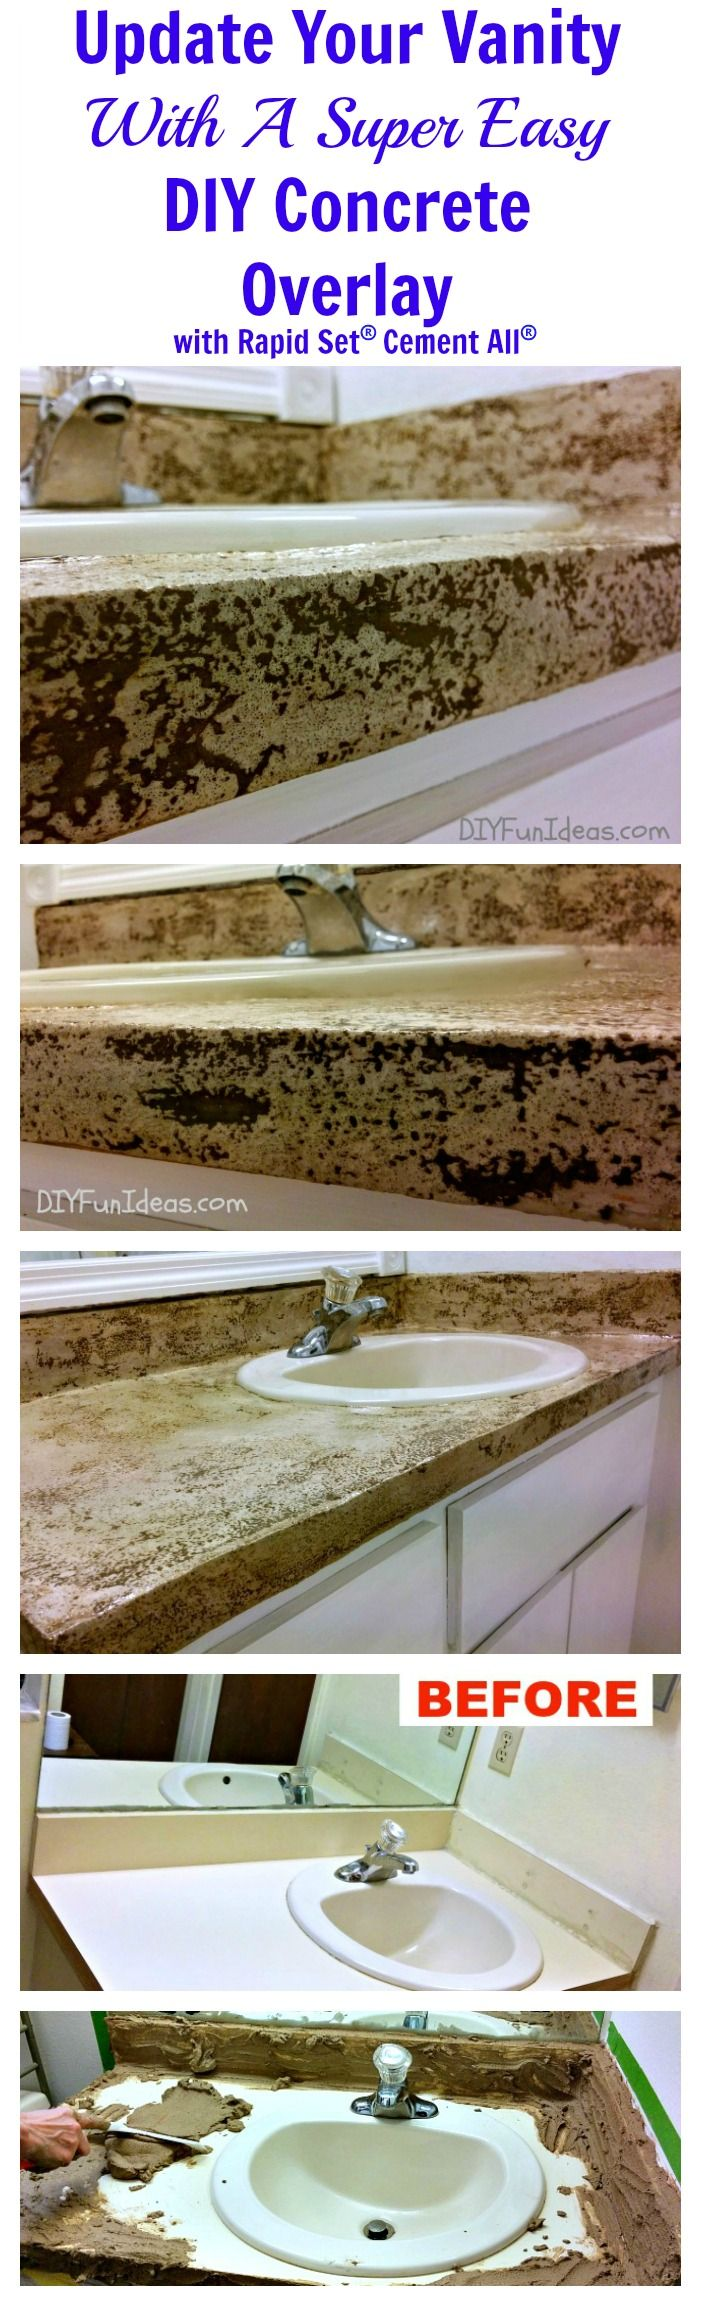 UPDATE YOUR VANITY WITH A SUPER EASY DIY CONCRETE OVERLAY with Rapid Set Cement All .............Most popular pins!